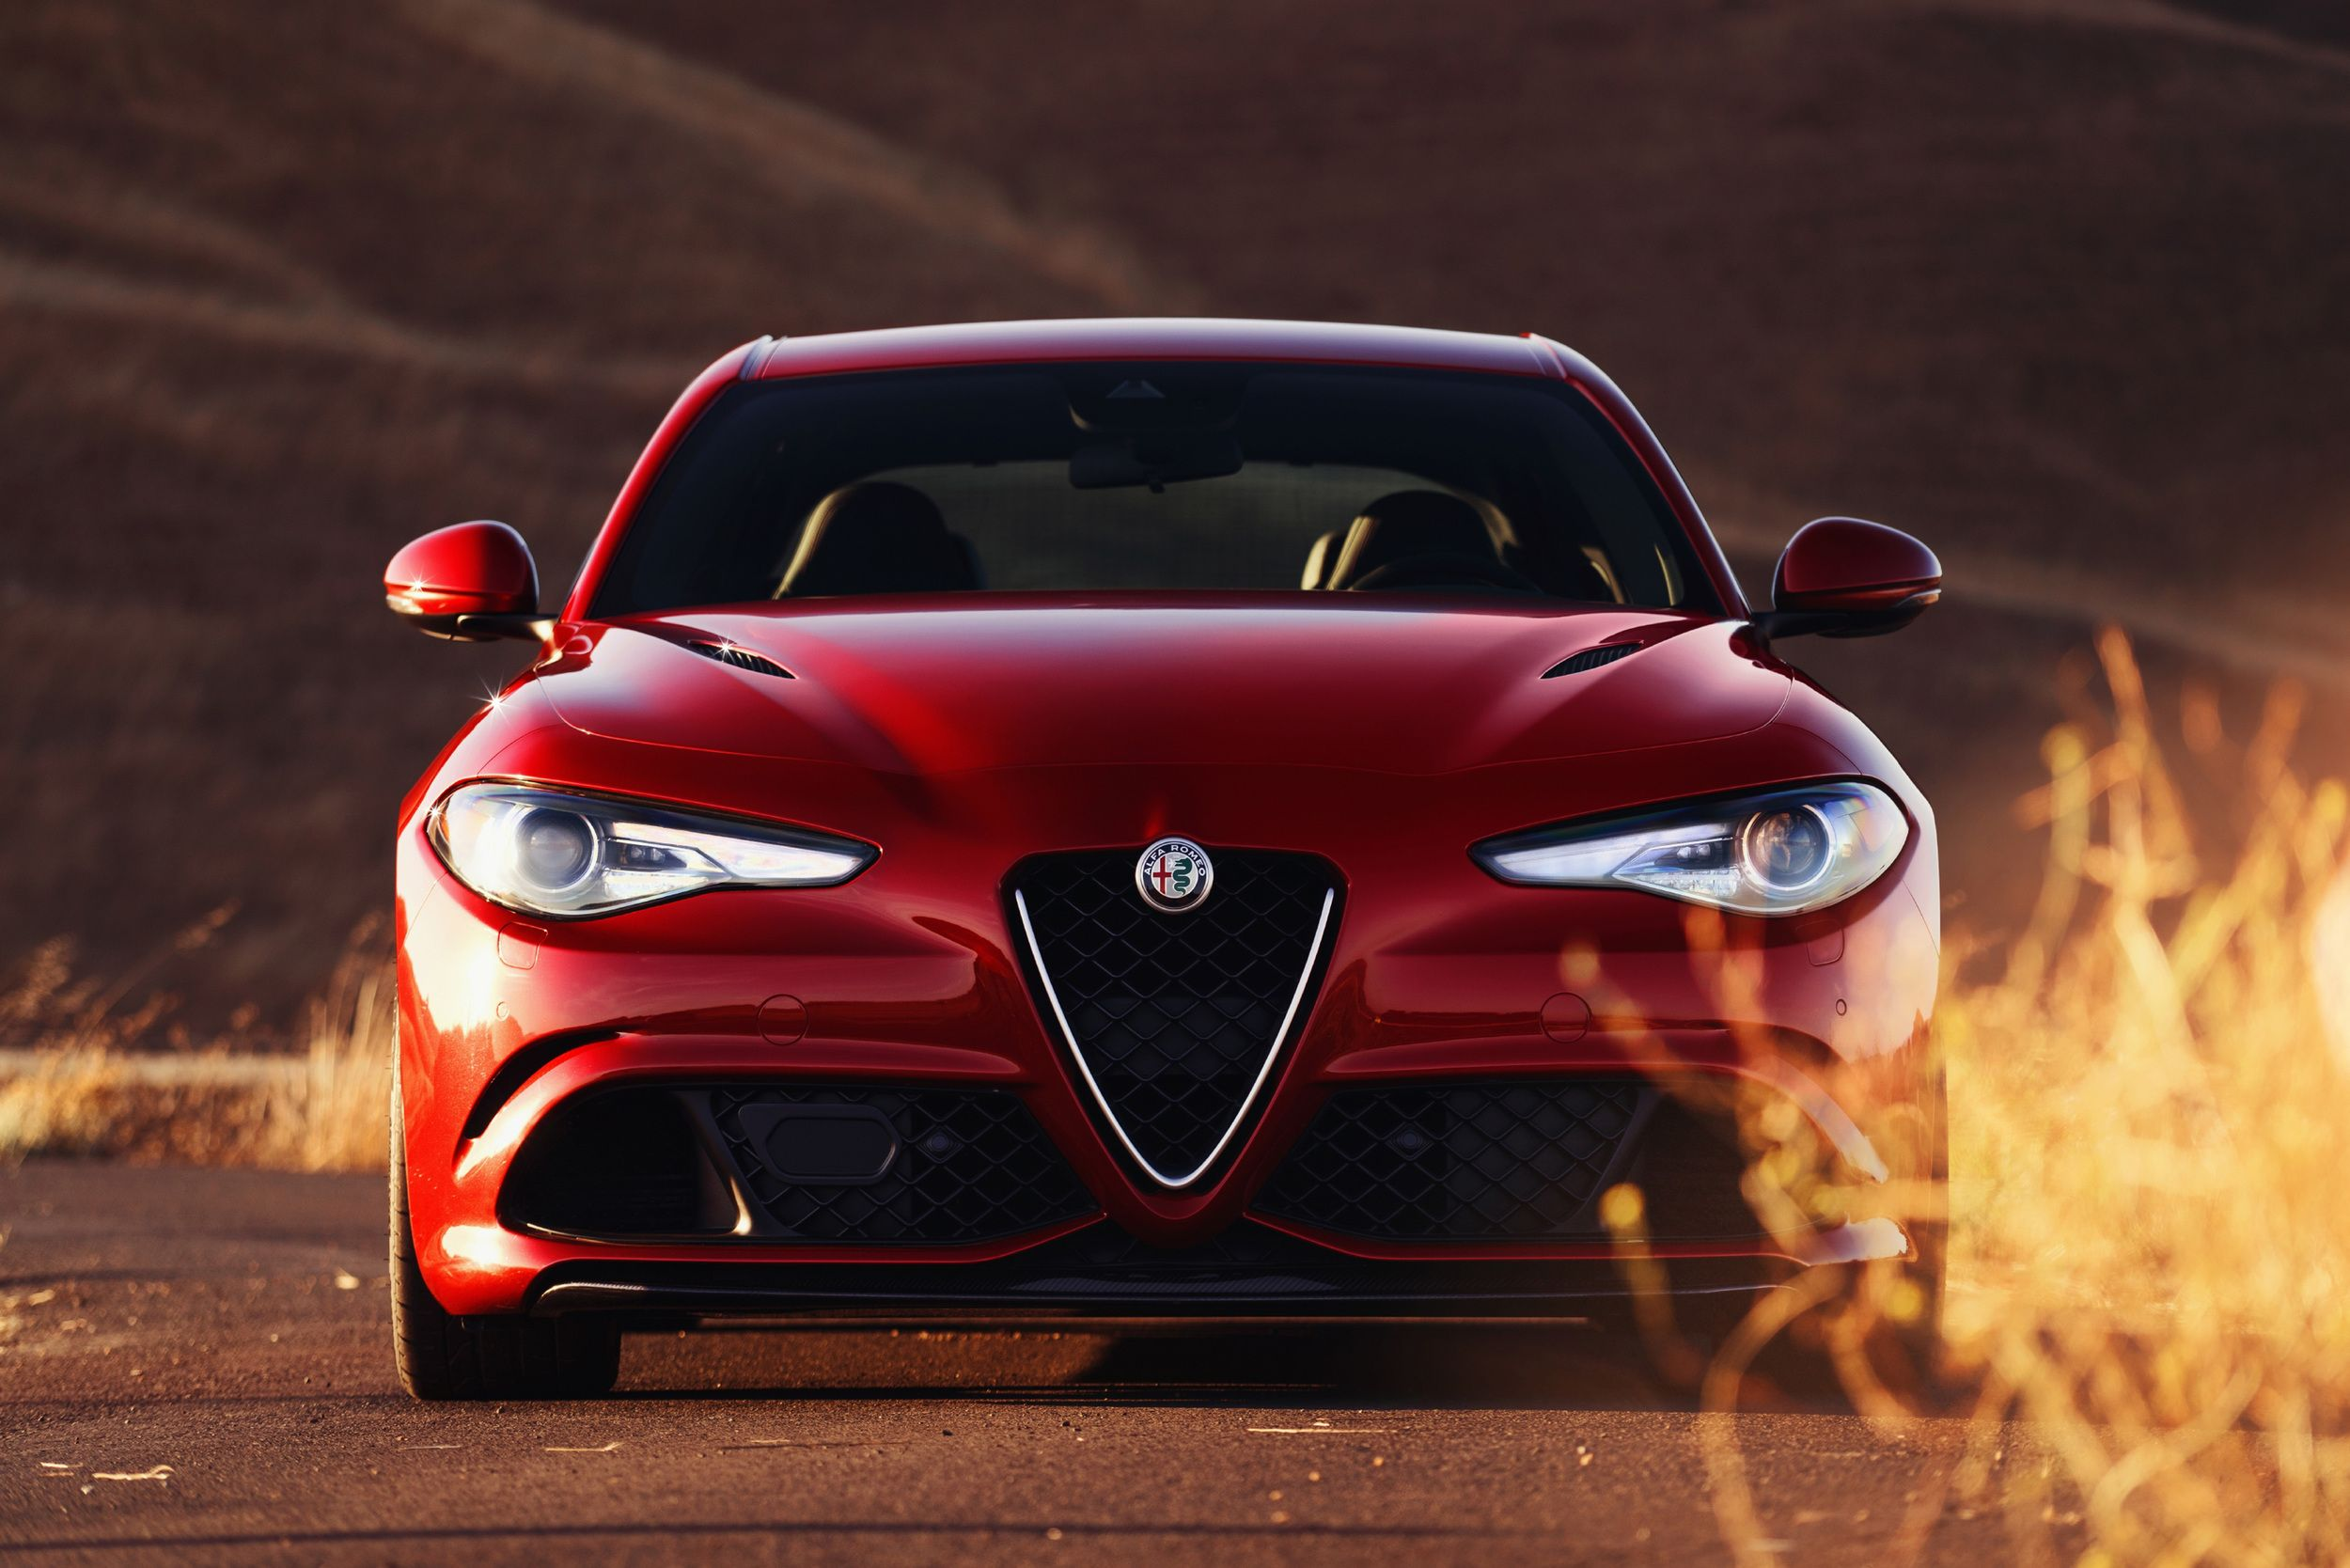 US spec 2017 Alfa Romeo Giulia details revealed